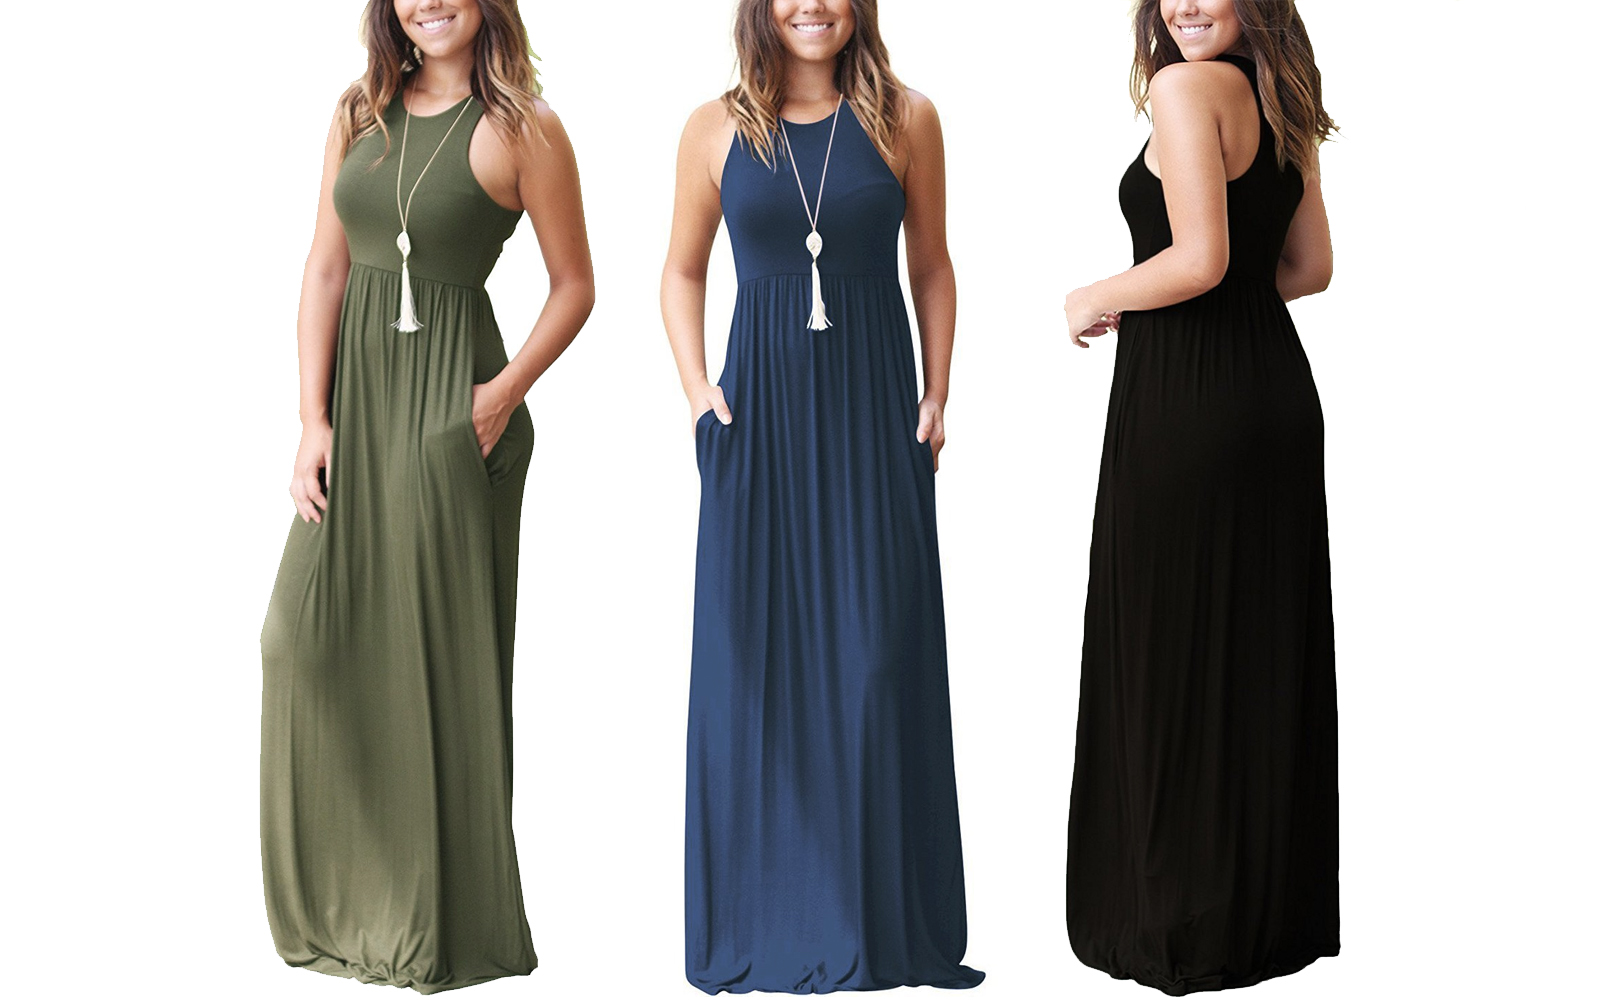 130bd0a029b4 People Are Obsessed With This Super-comfy Amazon Maxi Dress That s ...